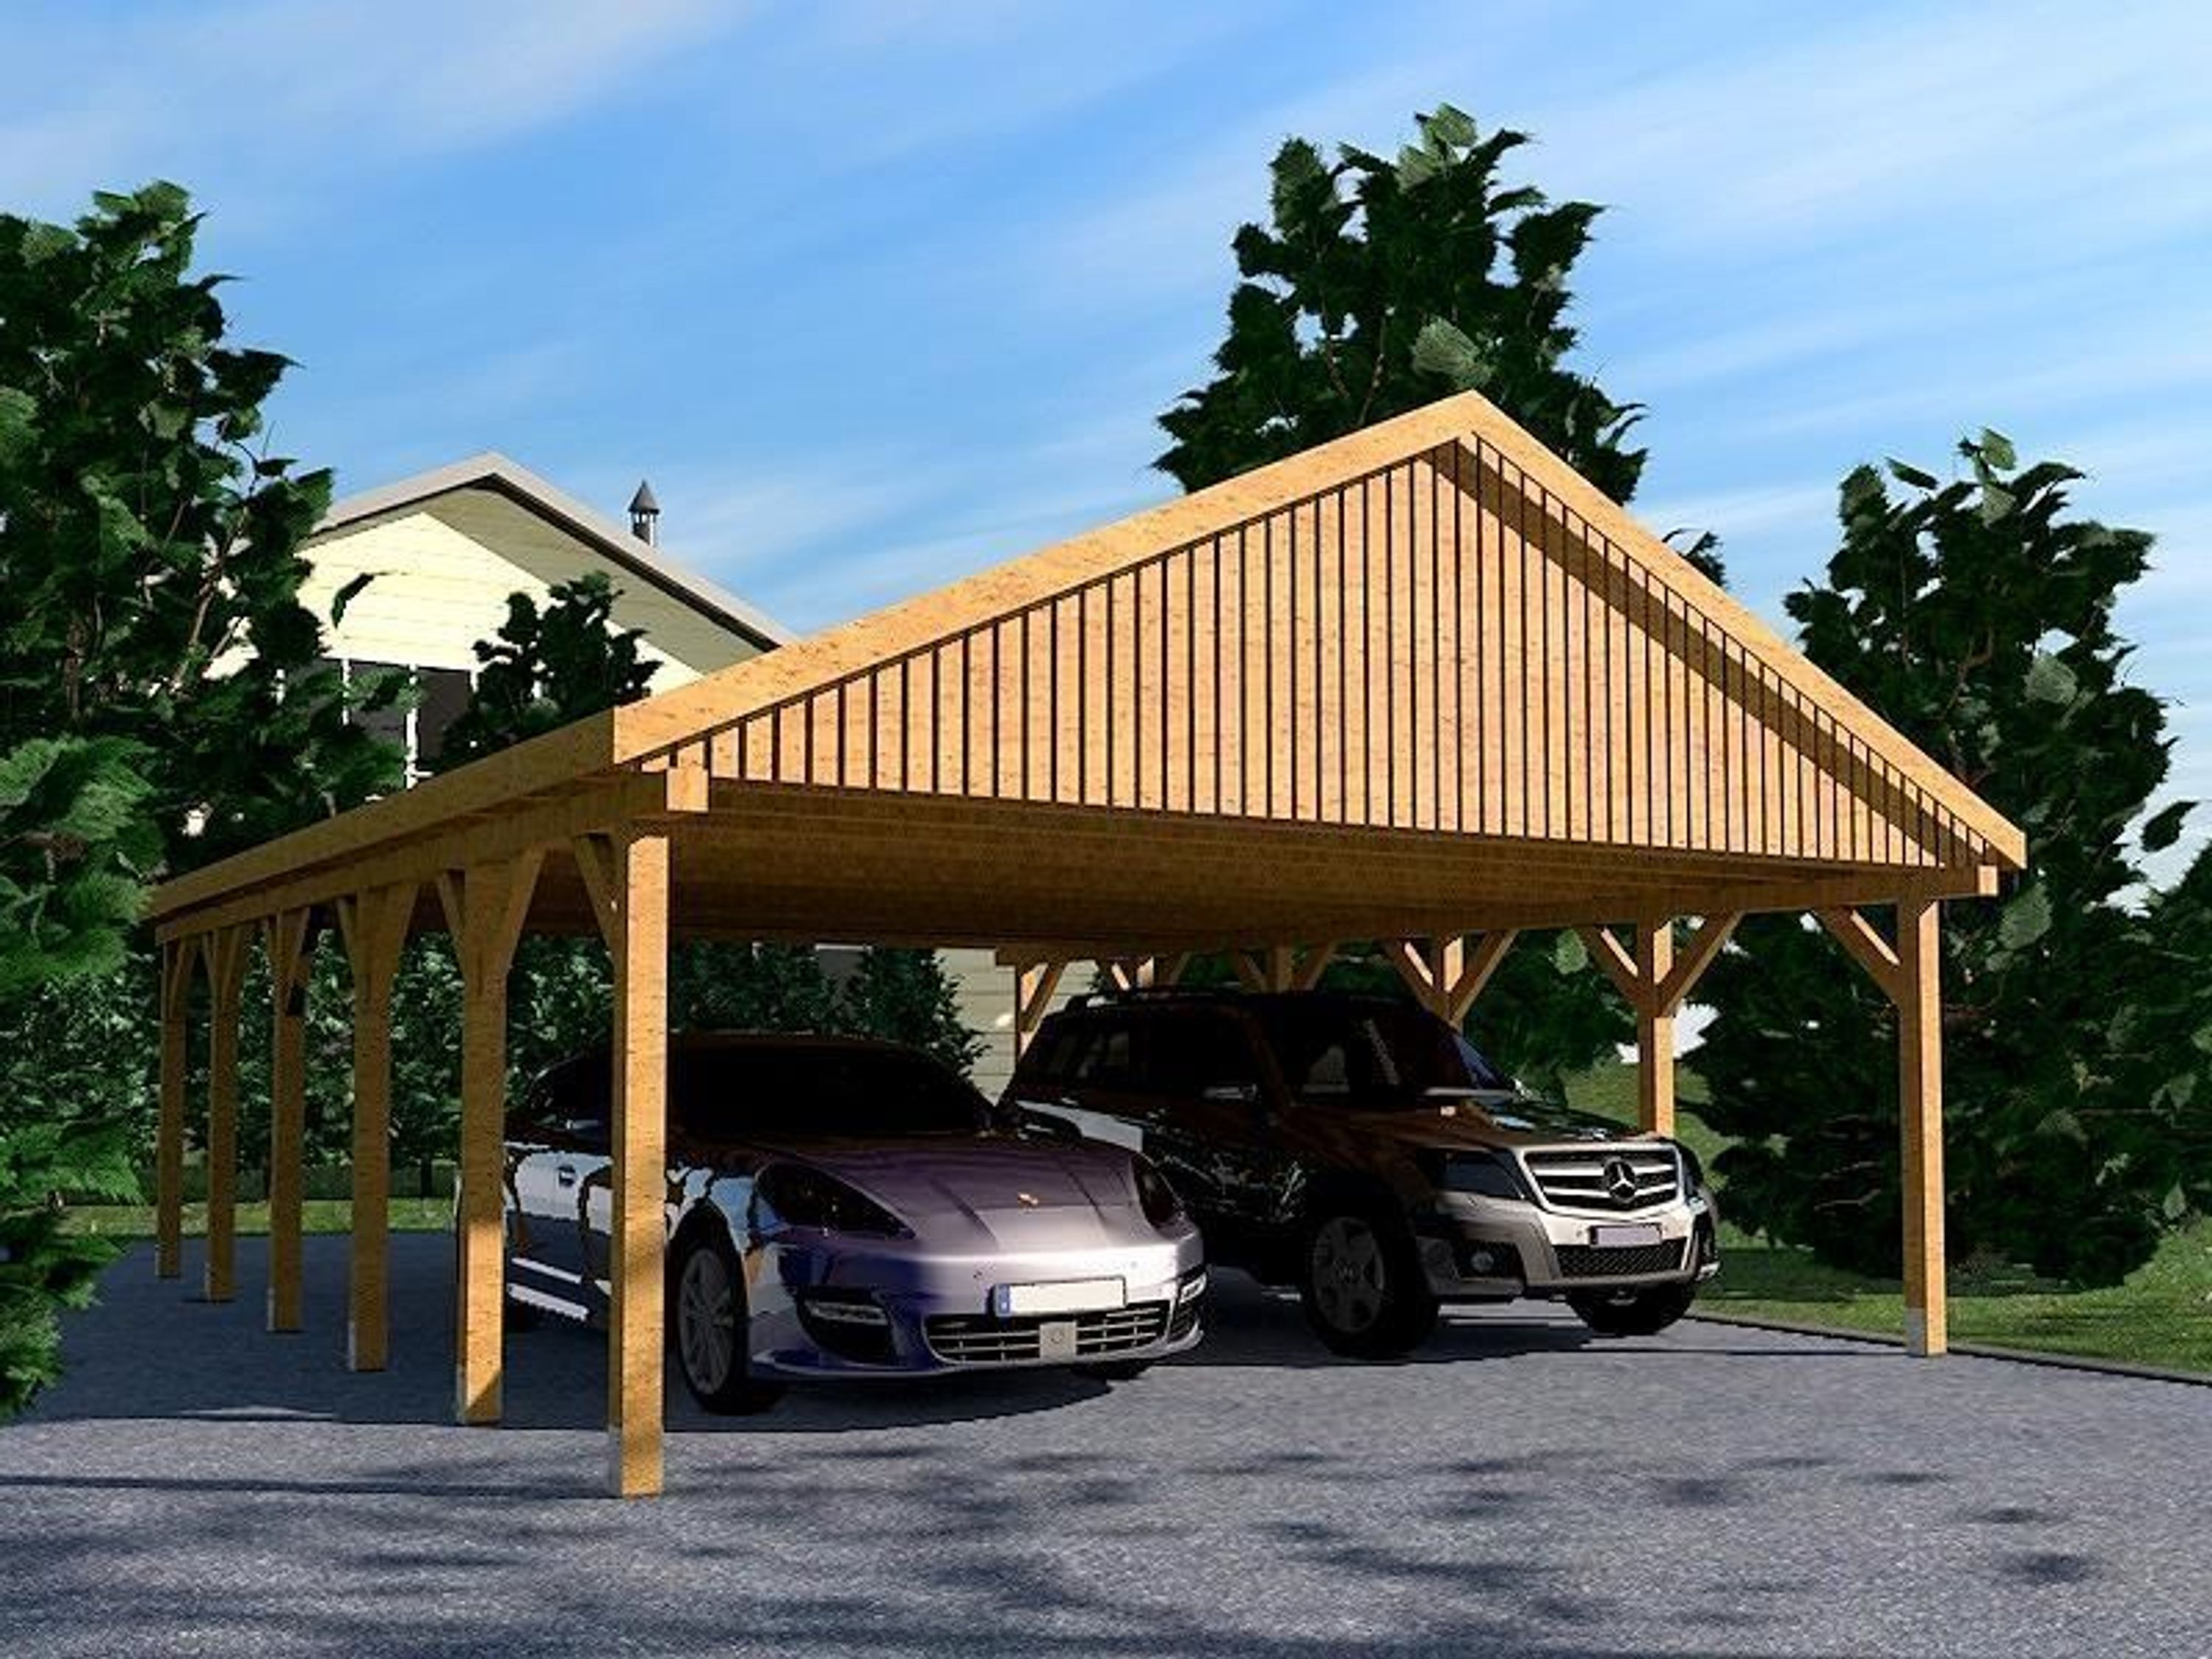 carport satteldach monte carlo vi 600x900cm kvh holz kaufen bei. Black Bedroom Furniture Sets. Home Design Ideas